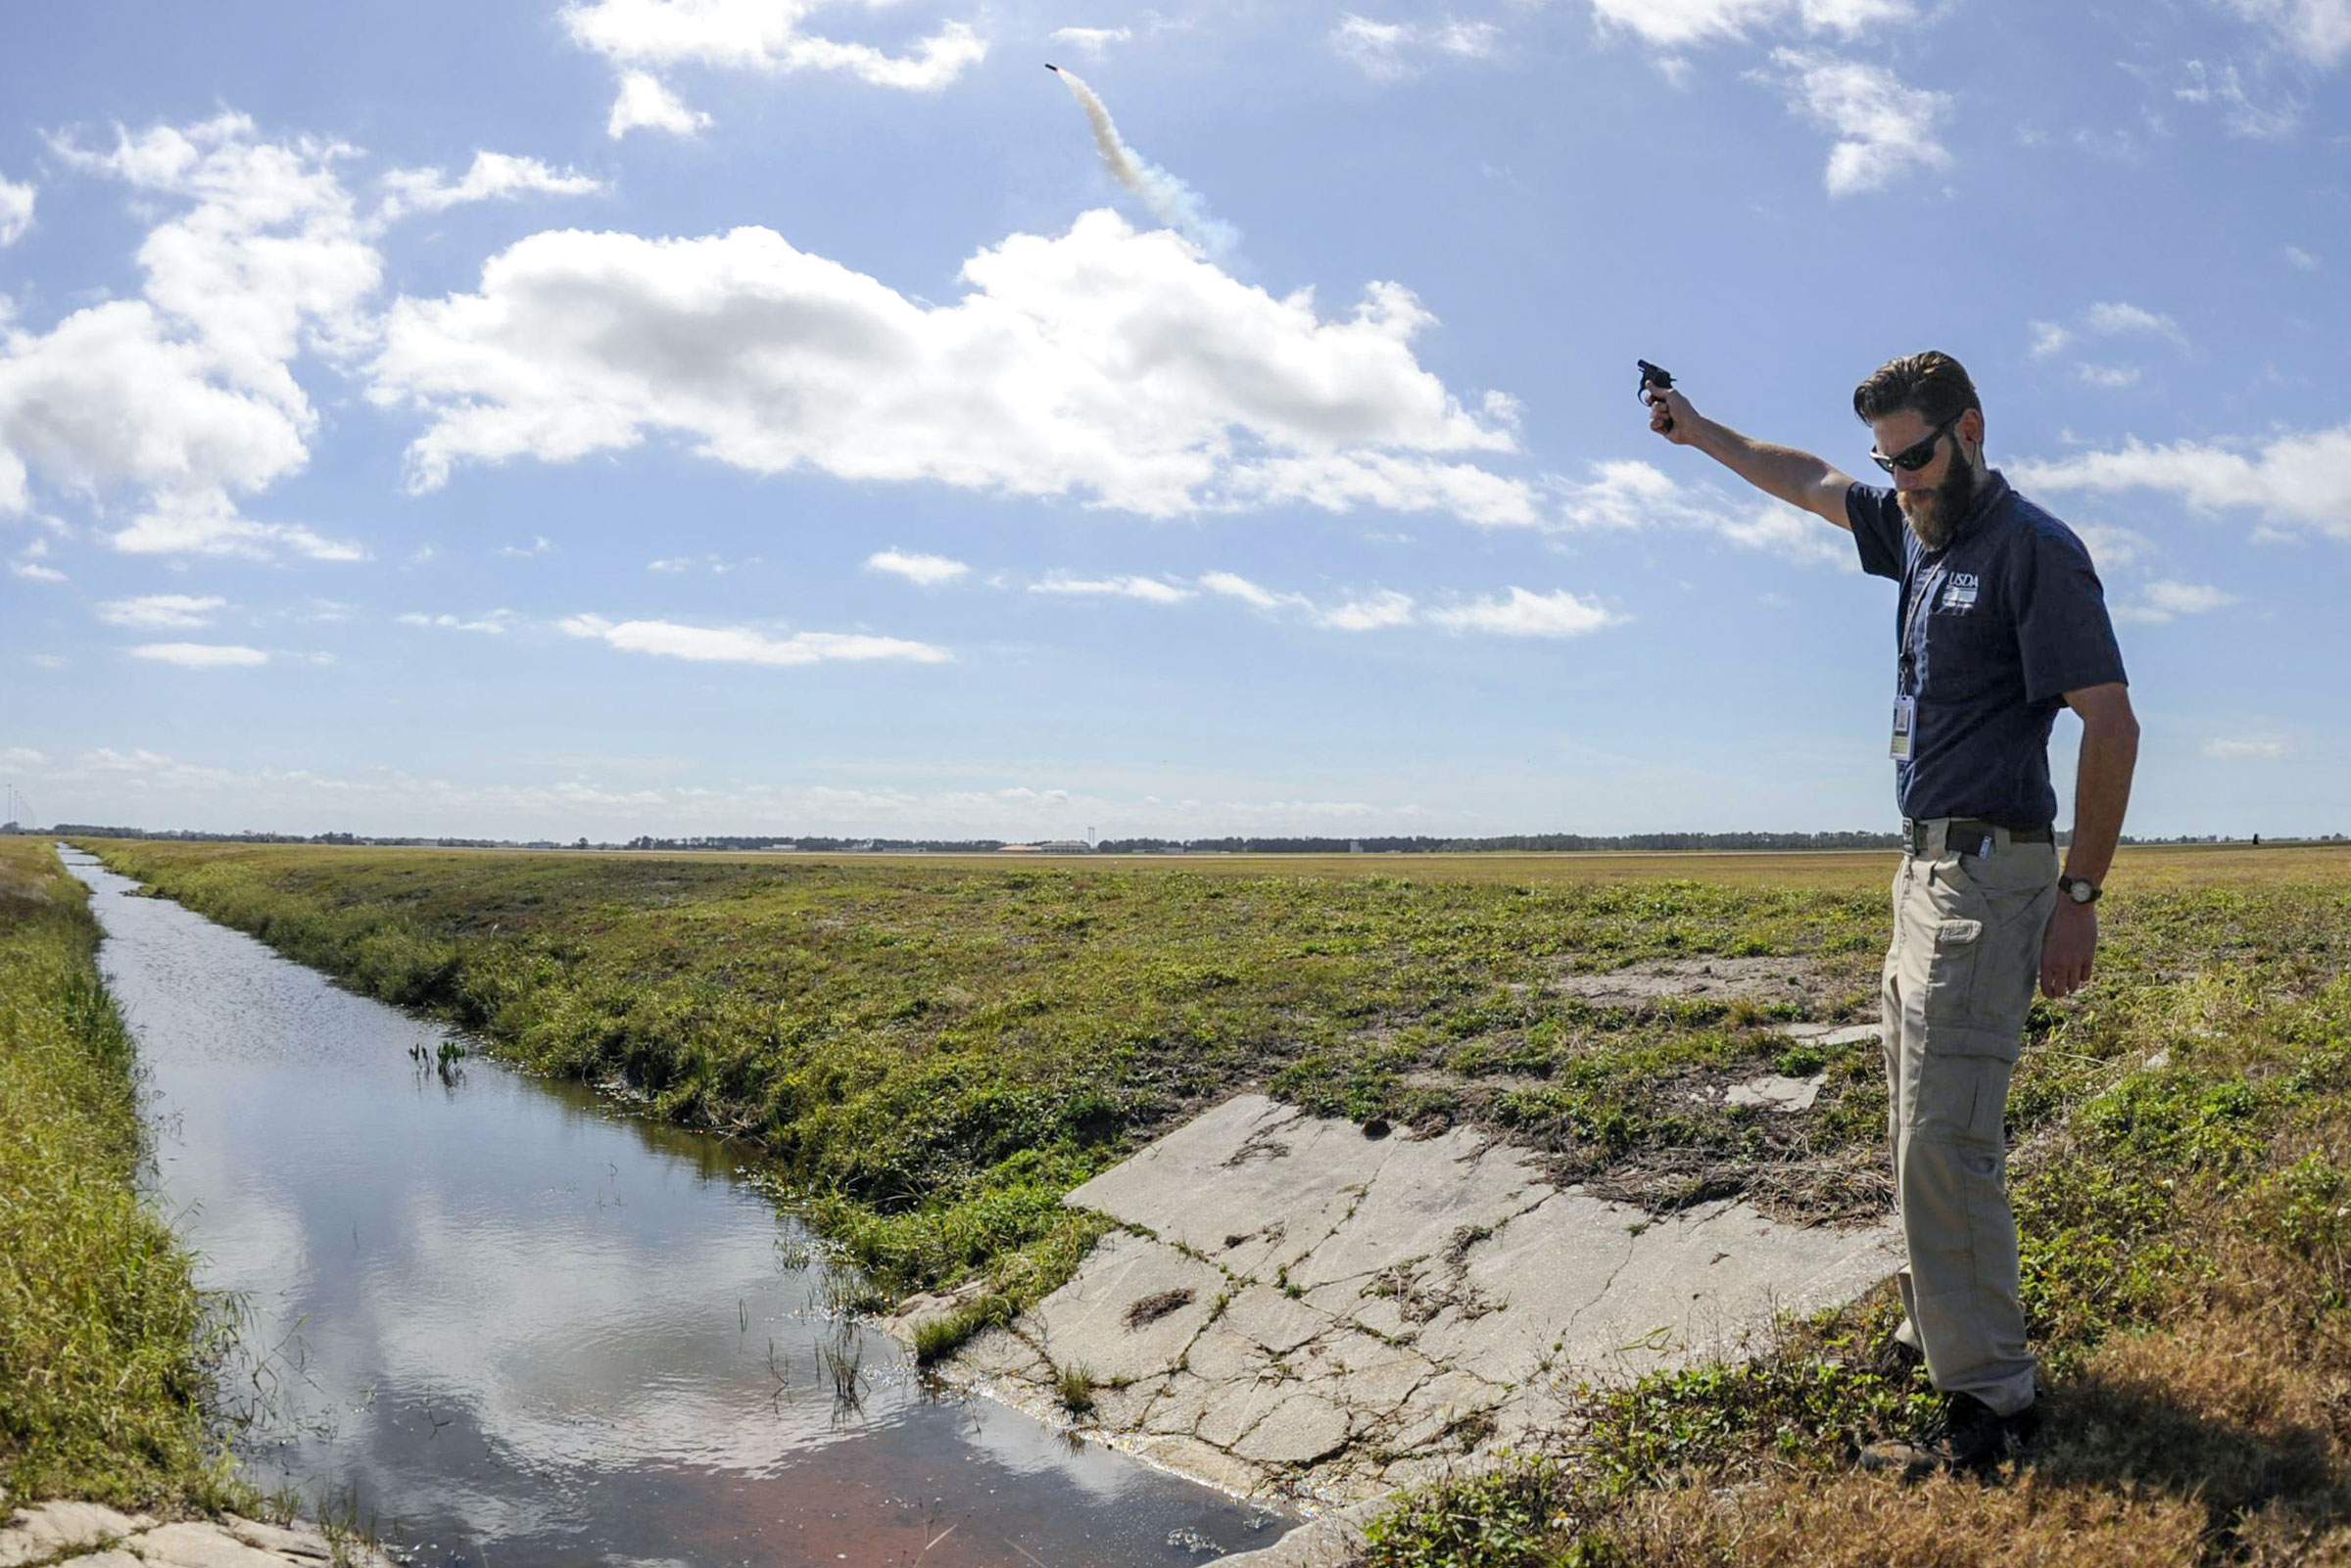 <p>Wildlife biologist Kory McLellan shoots off pyrotechnics to scare birds away from the airfield at MacDill Air Force Base in Tampa, Fla.</p>